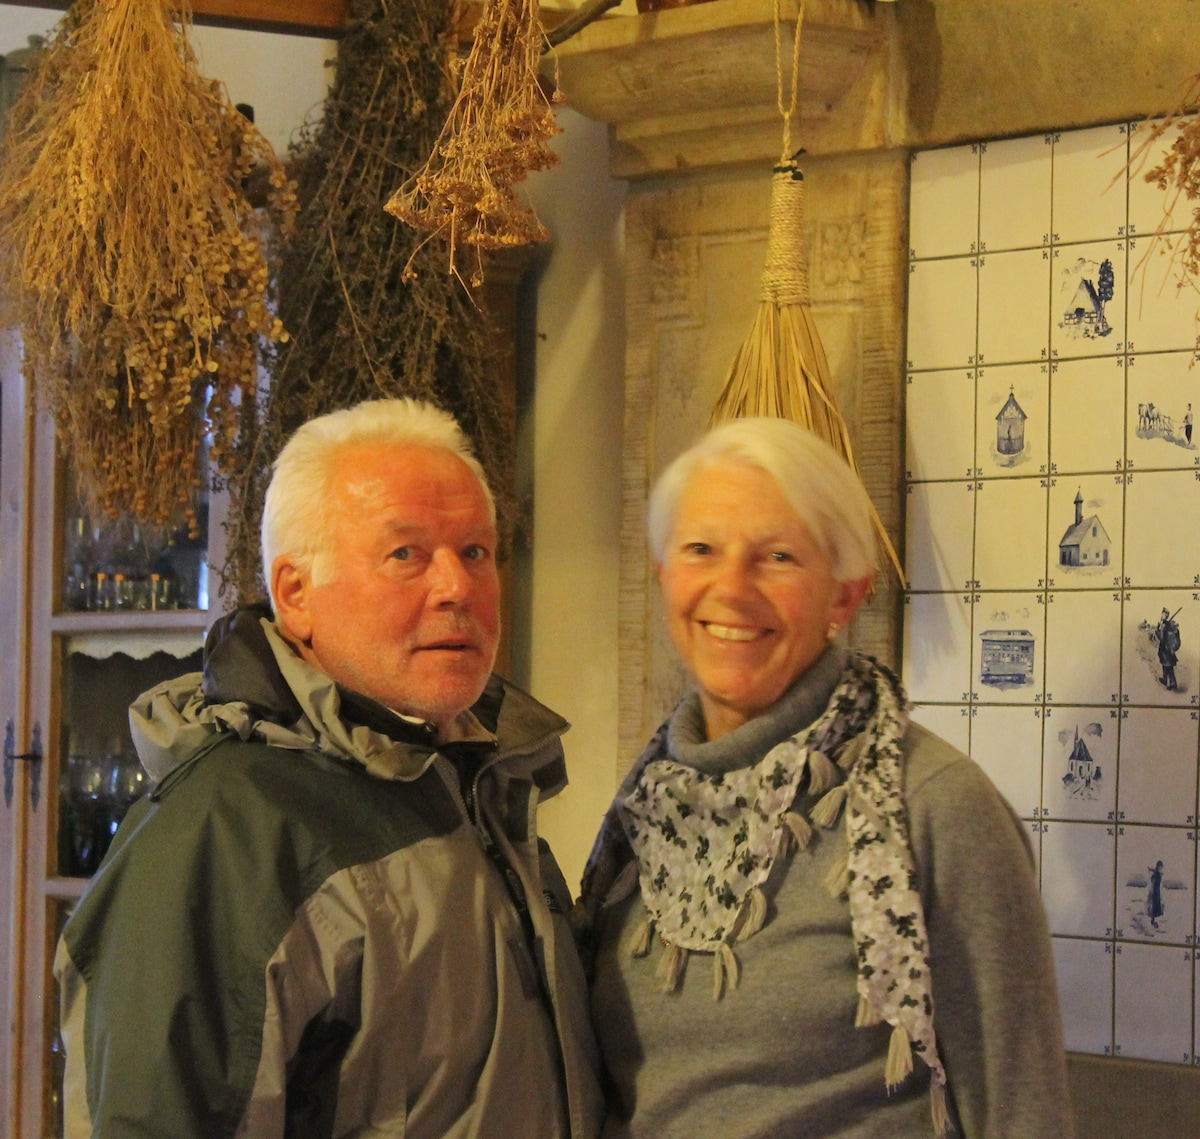 Alfons & Pamela From Ostbevern, Germany